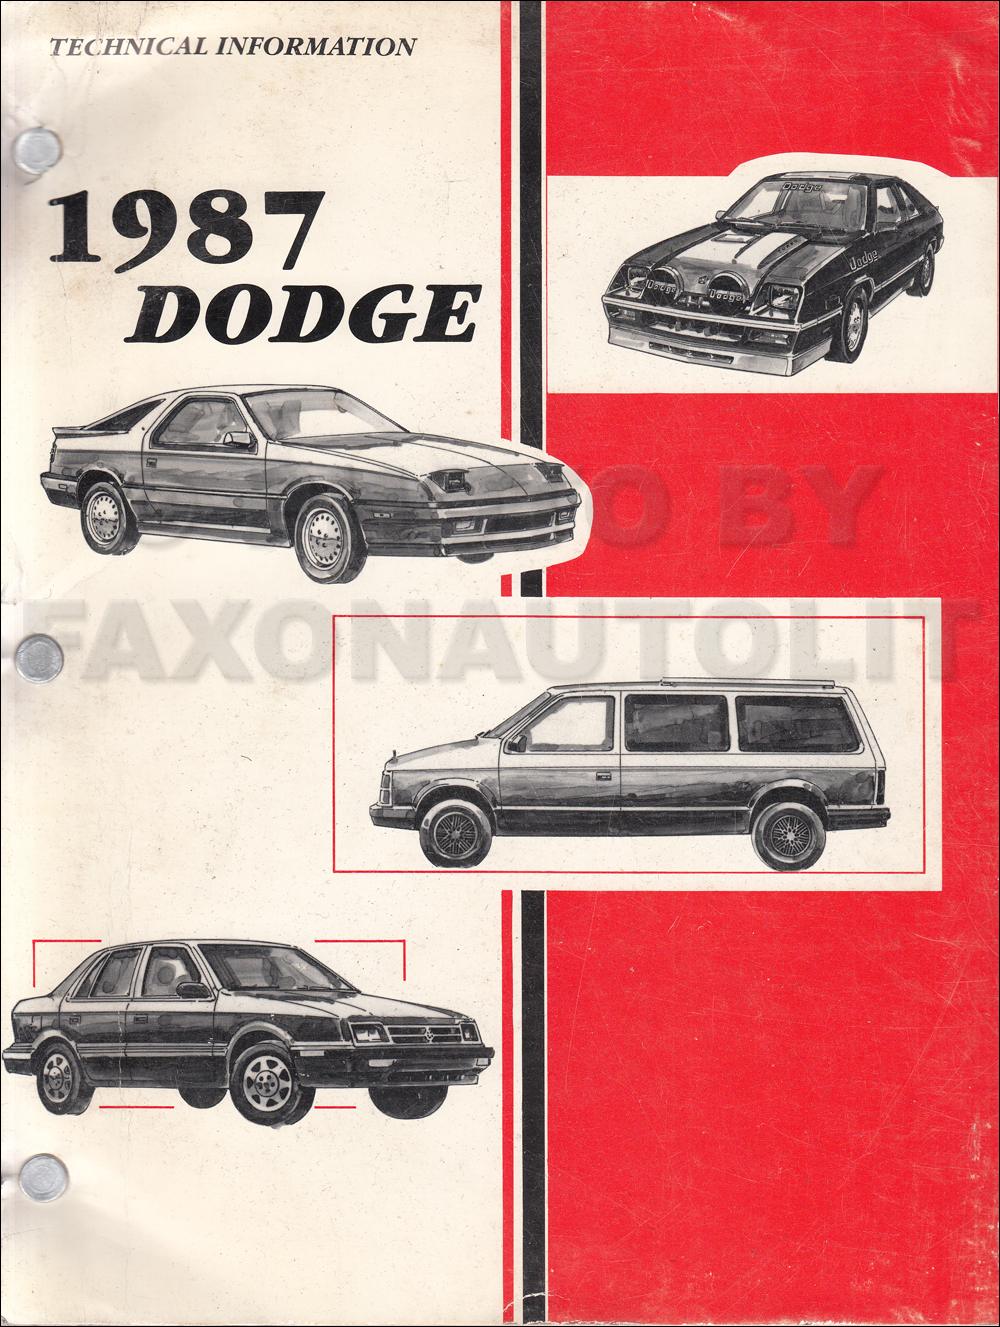 1987 Caravan And Voyager Repair Shop Manual Original 2 Volume Set Dodge Wire Diagrams Car Technical Press Information